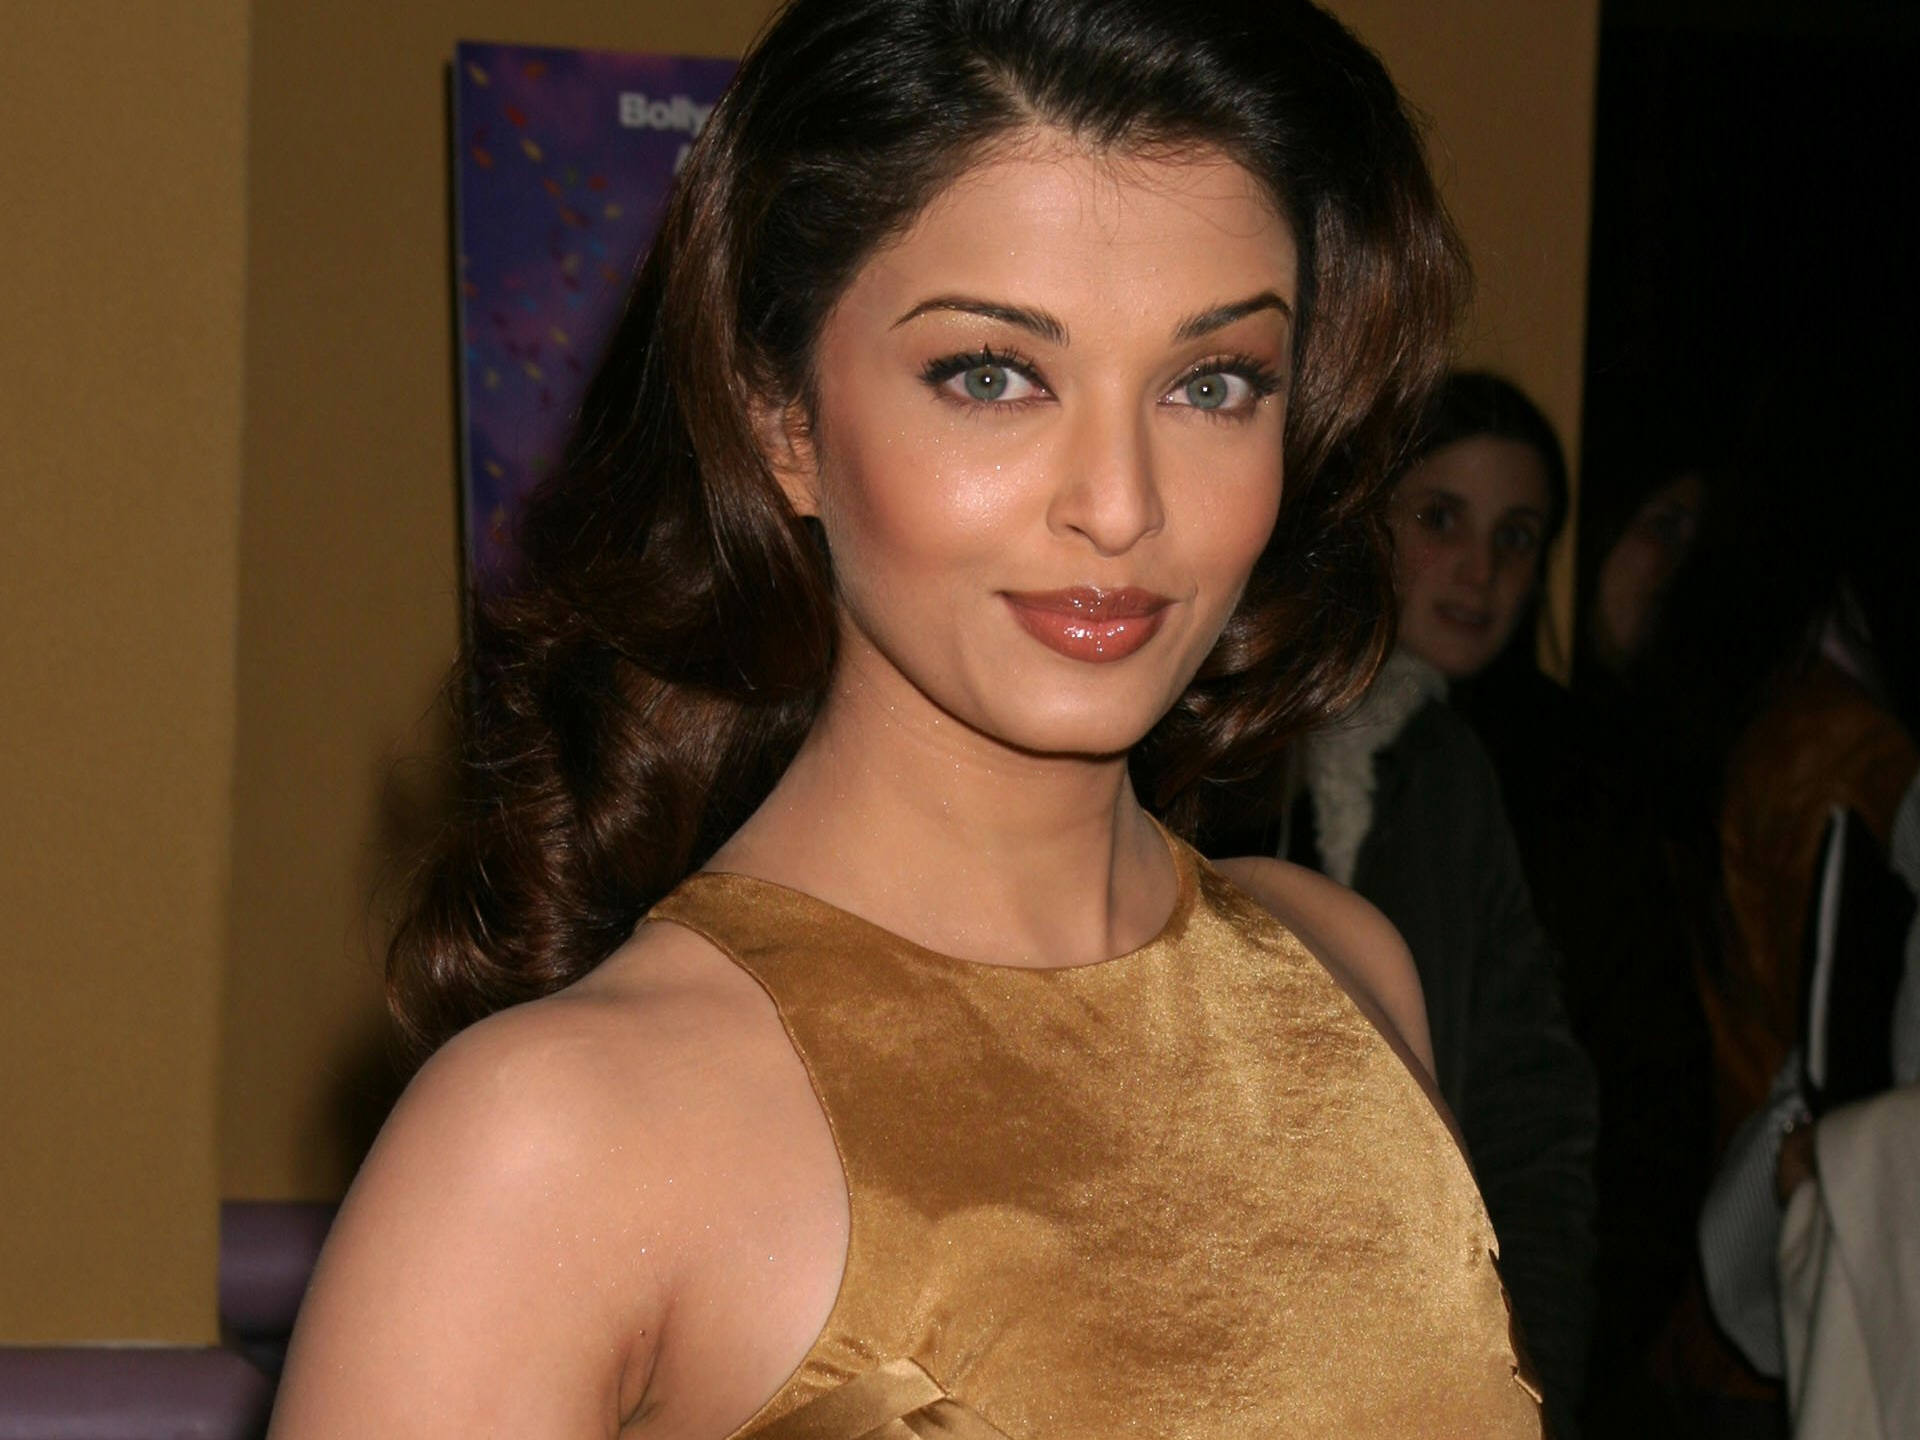 http://www.shareyourwallpaper.com/upload/wallpaper/celebrities-female/aishwarya-rai/aishwarya-rai_5f3d7abb.jpg